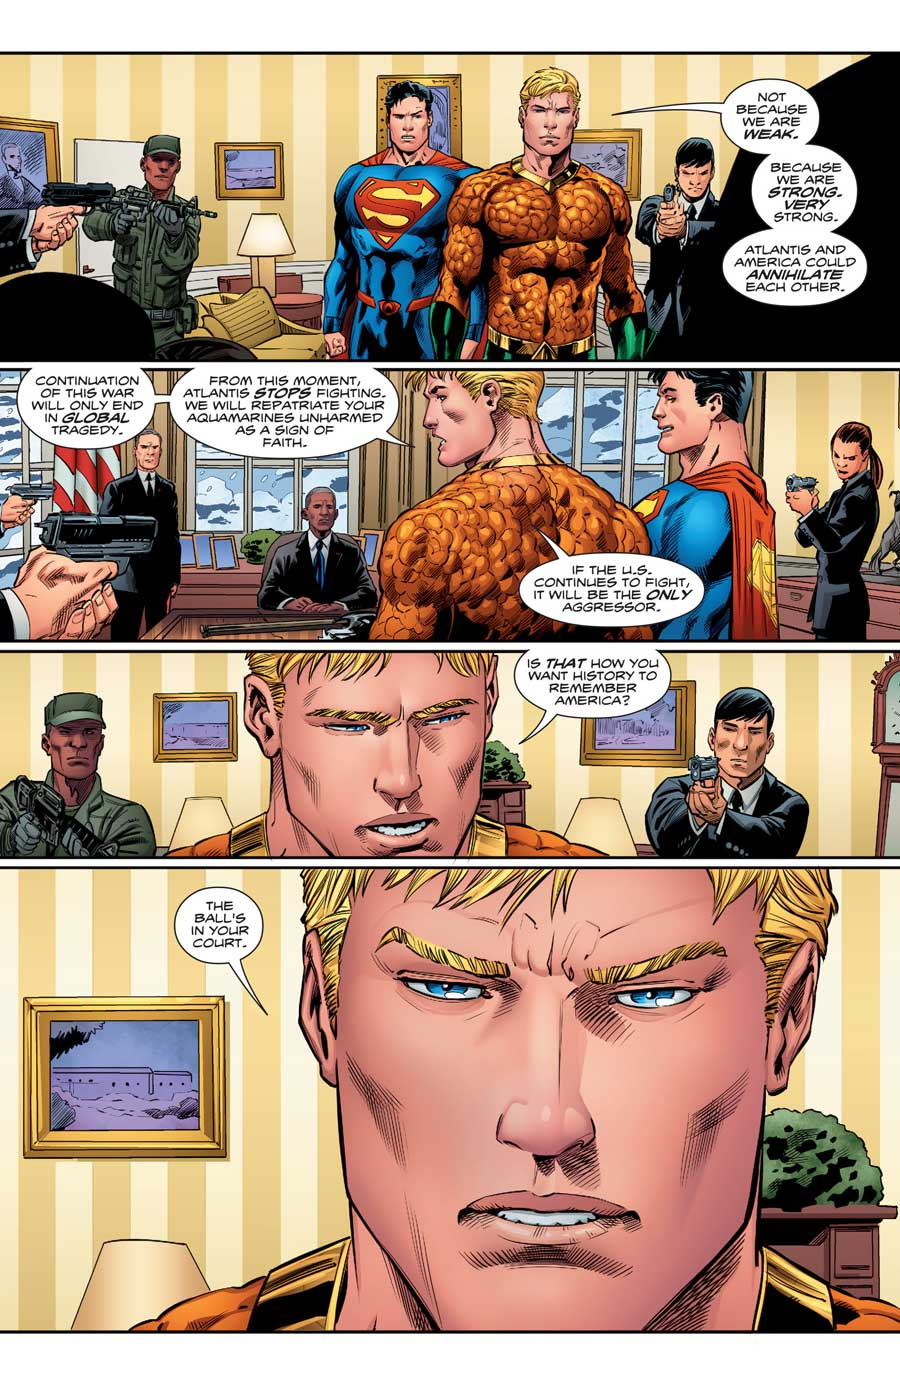 AQUAMAN #15 by Dan Abnett, Philippe Briones and Wayne Faucher